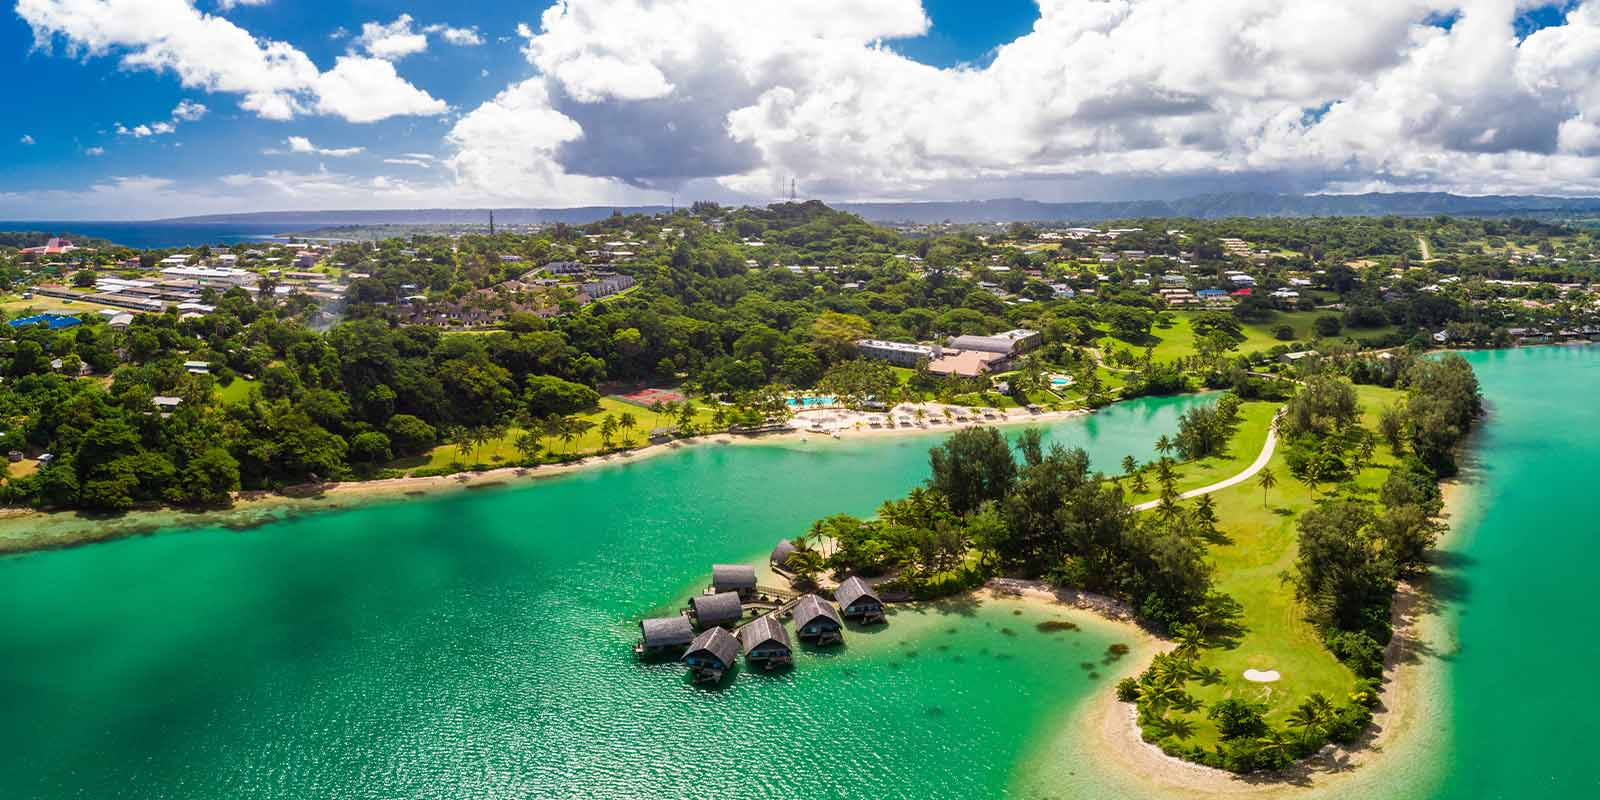 Vanuatu Citizenship by Investment Program - Aeria view of the island